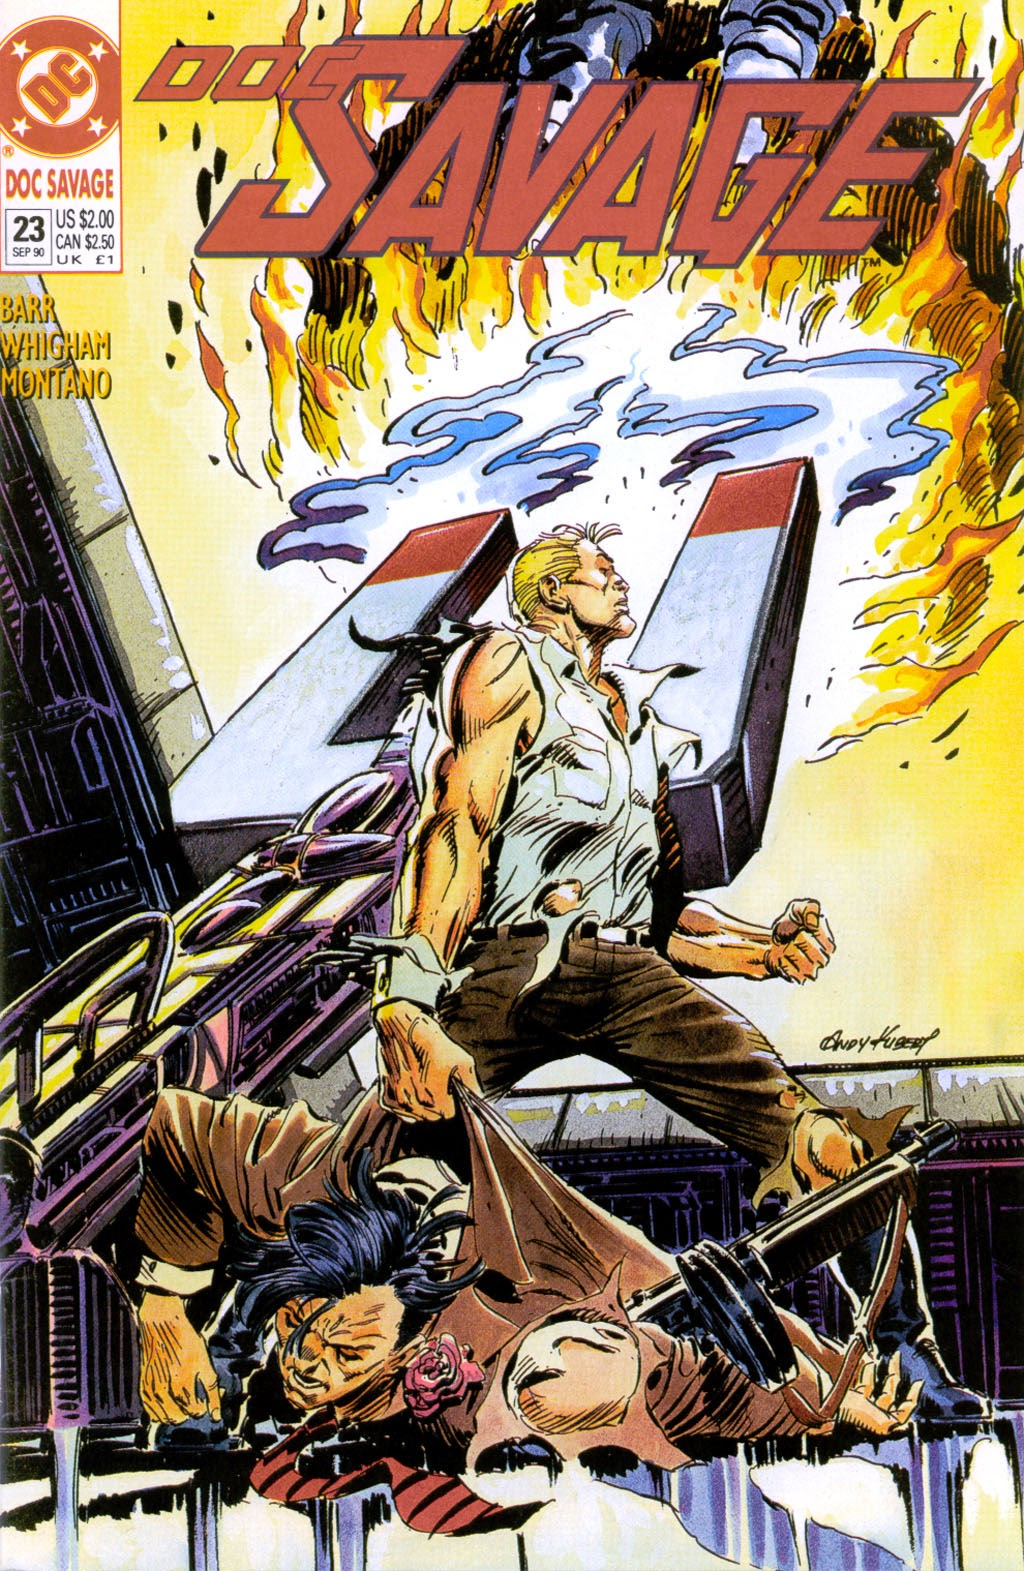 Doc Savage (1988) issue 23 - Page 1